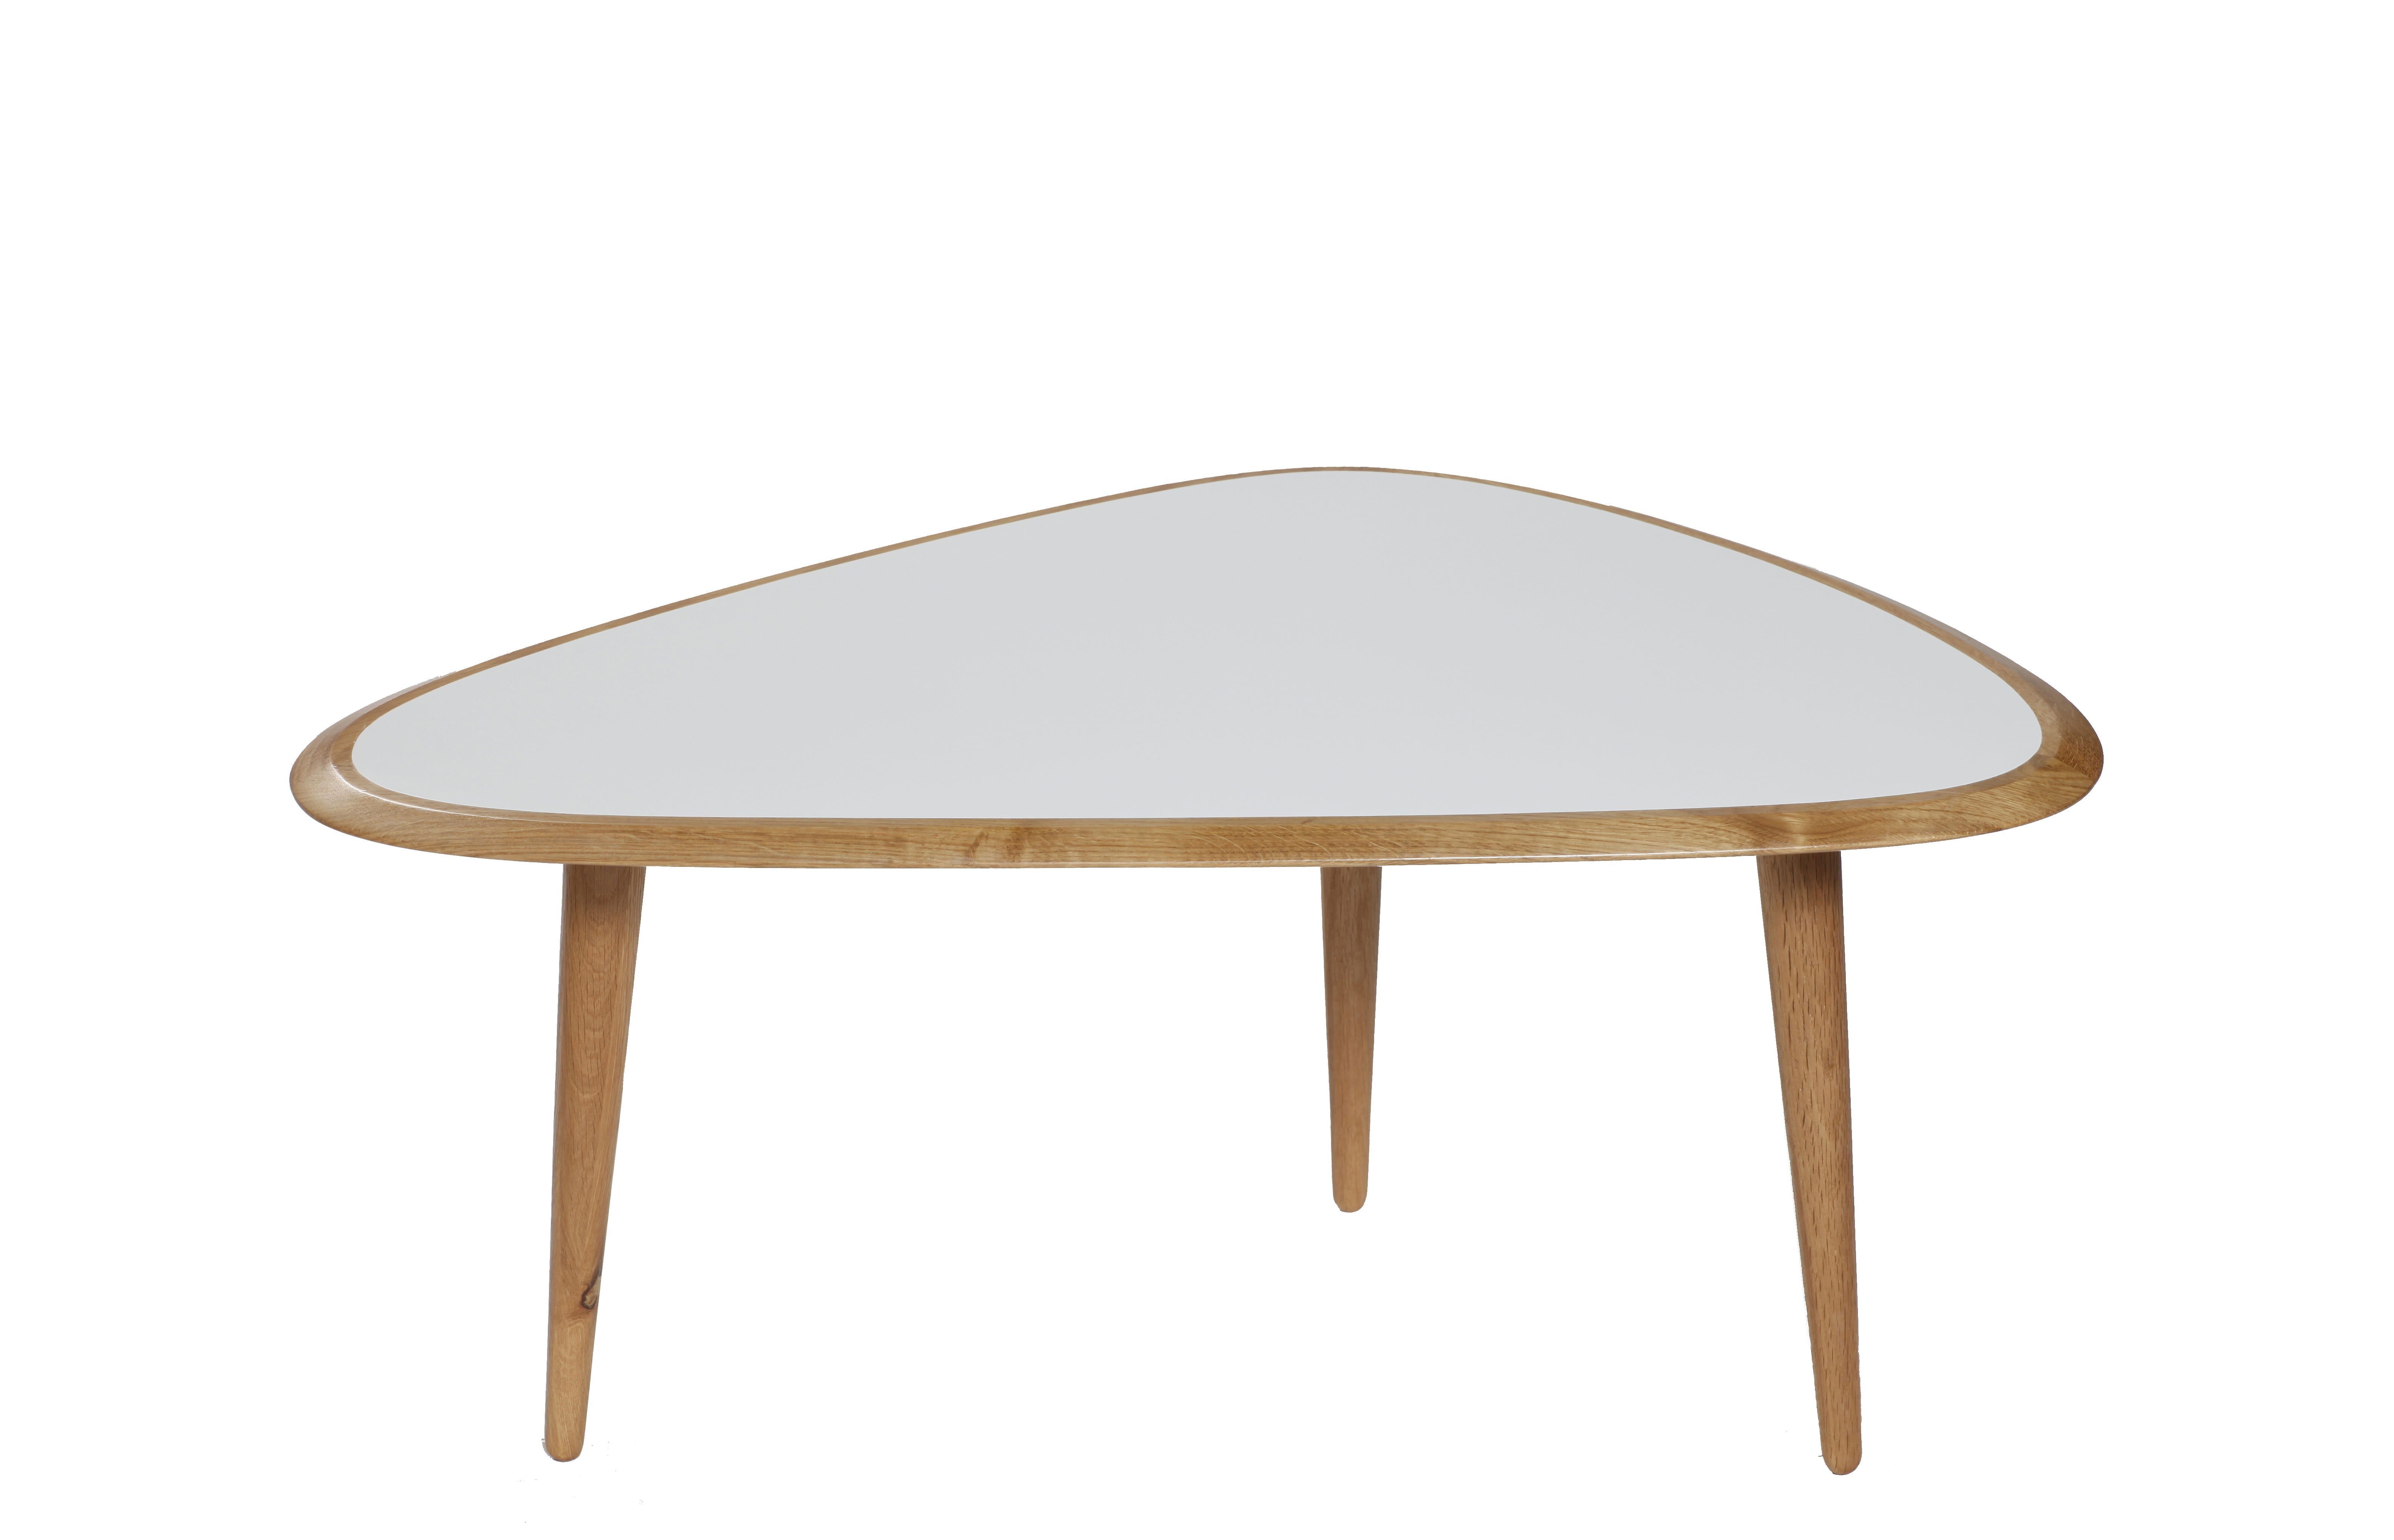 Mobilier - Tables basses - Table basse Small / 85 x 53 cm - Laque - RED Edition - Blanc laqué - Chêne massif, Laque traditionnelle